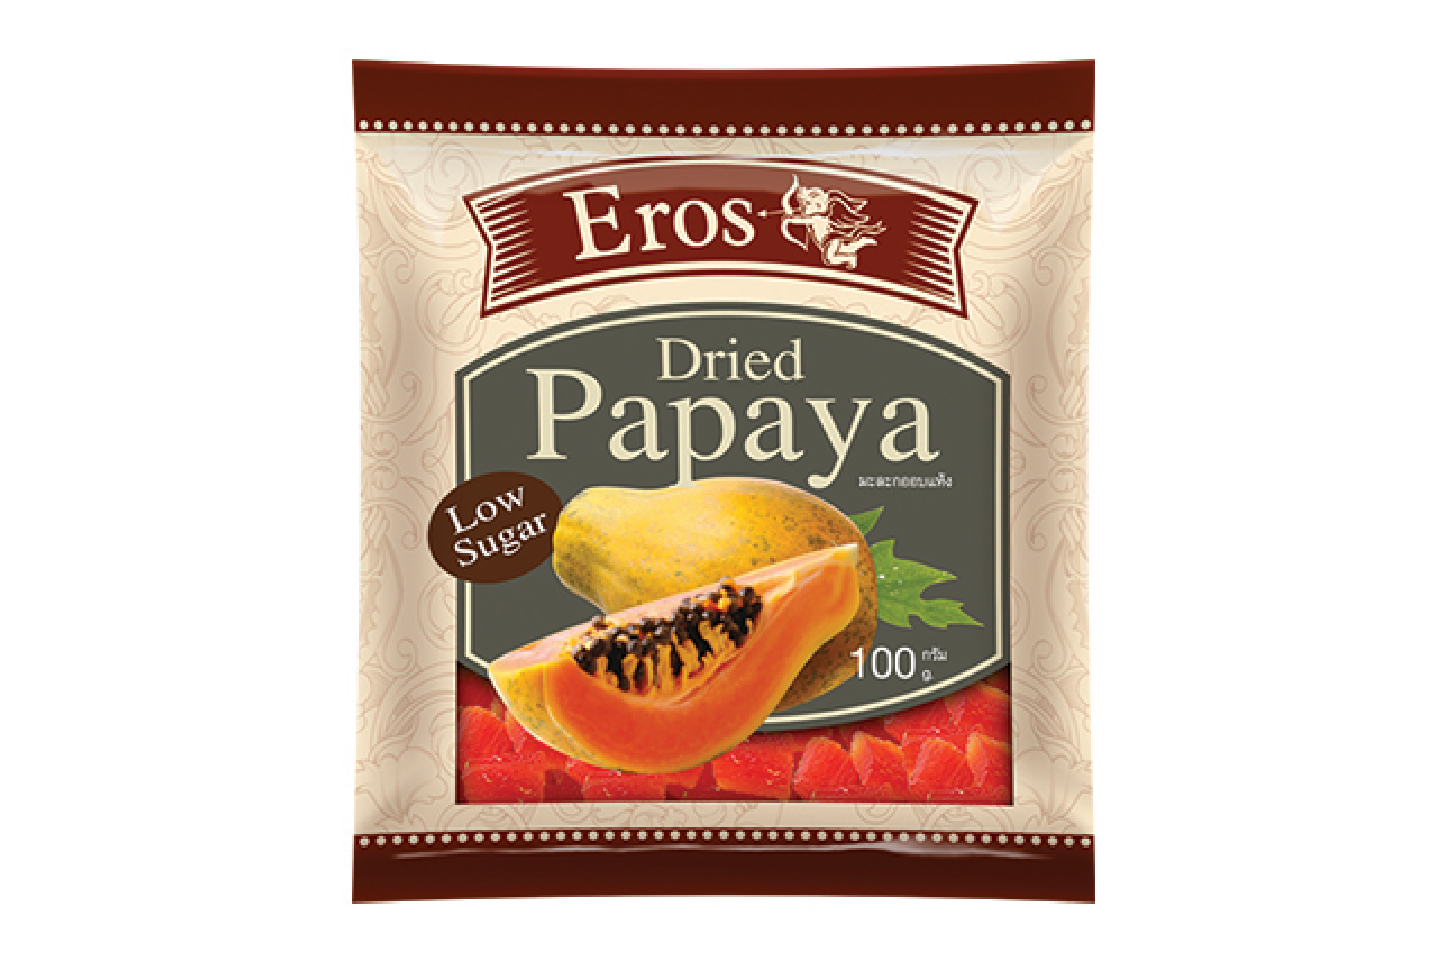 EROS Dried Papaya